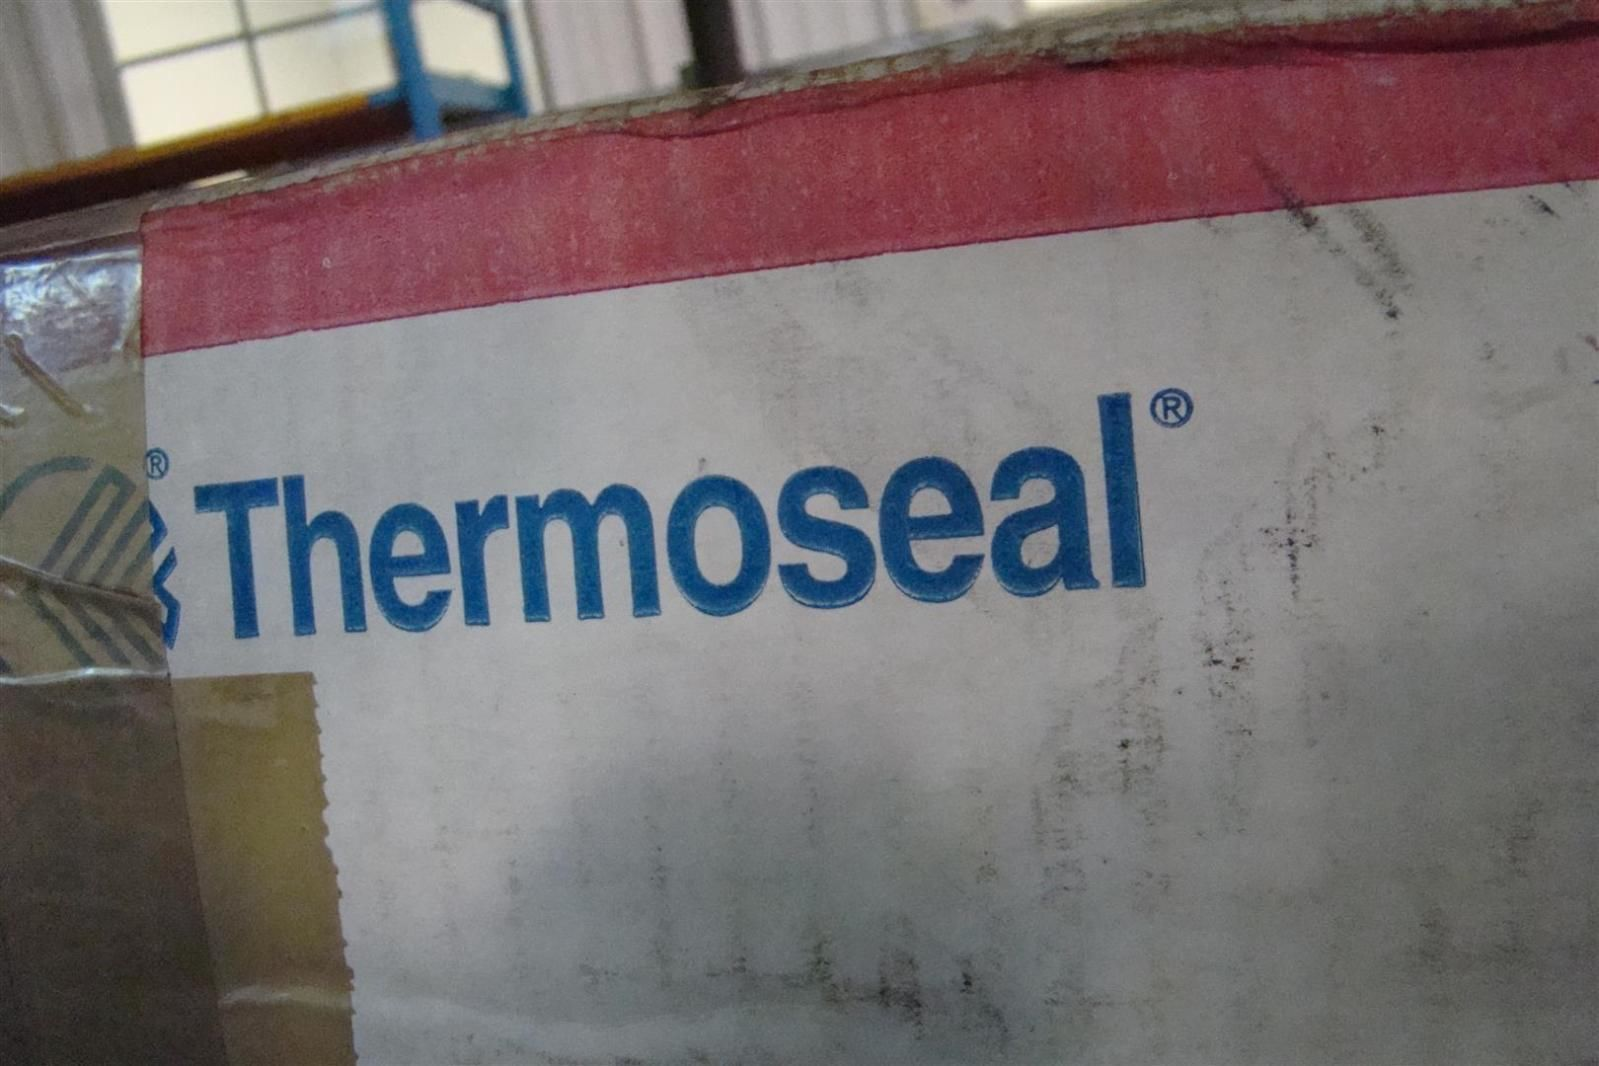 Thermoseal Klingers Compressed Gasket Material 24 X 33 1 2